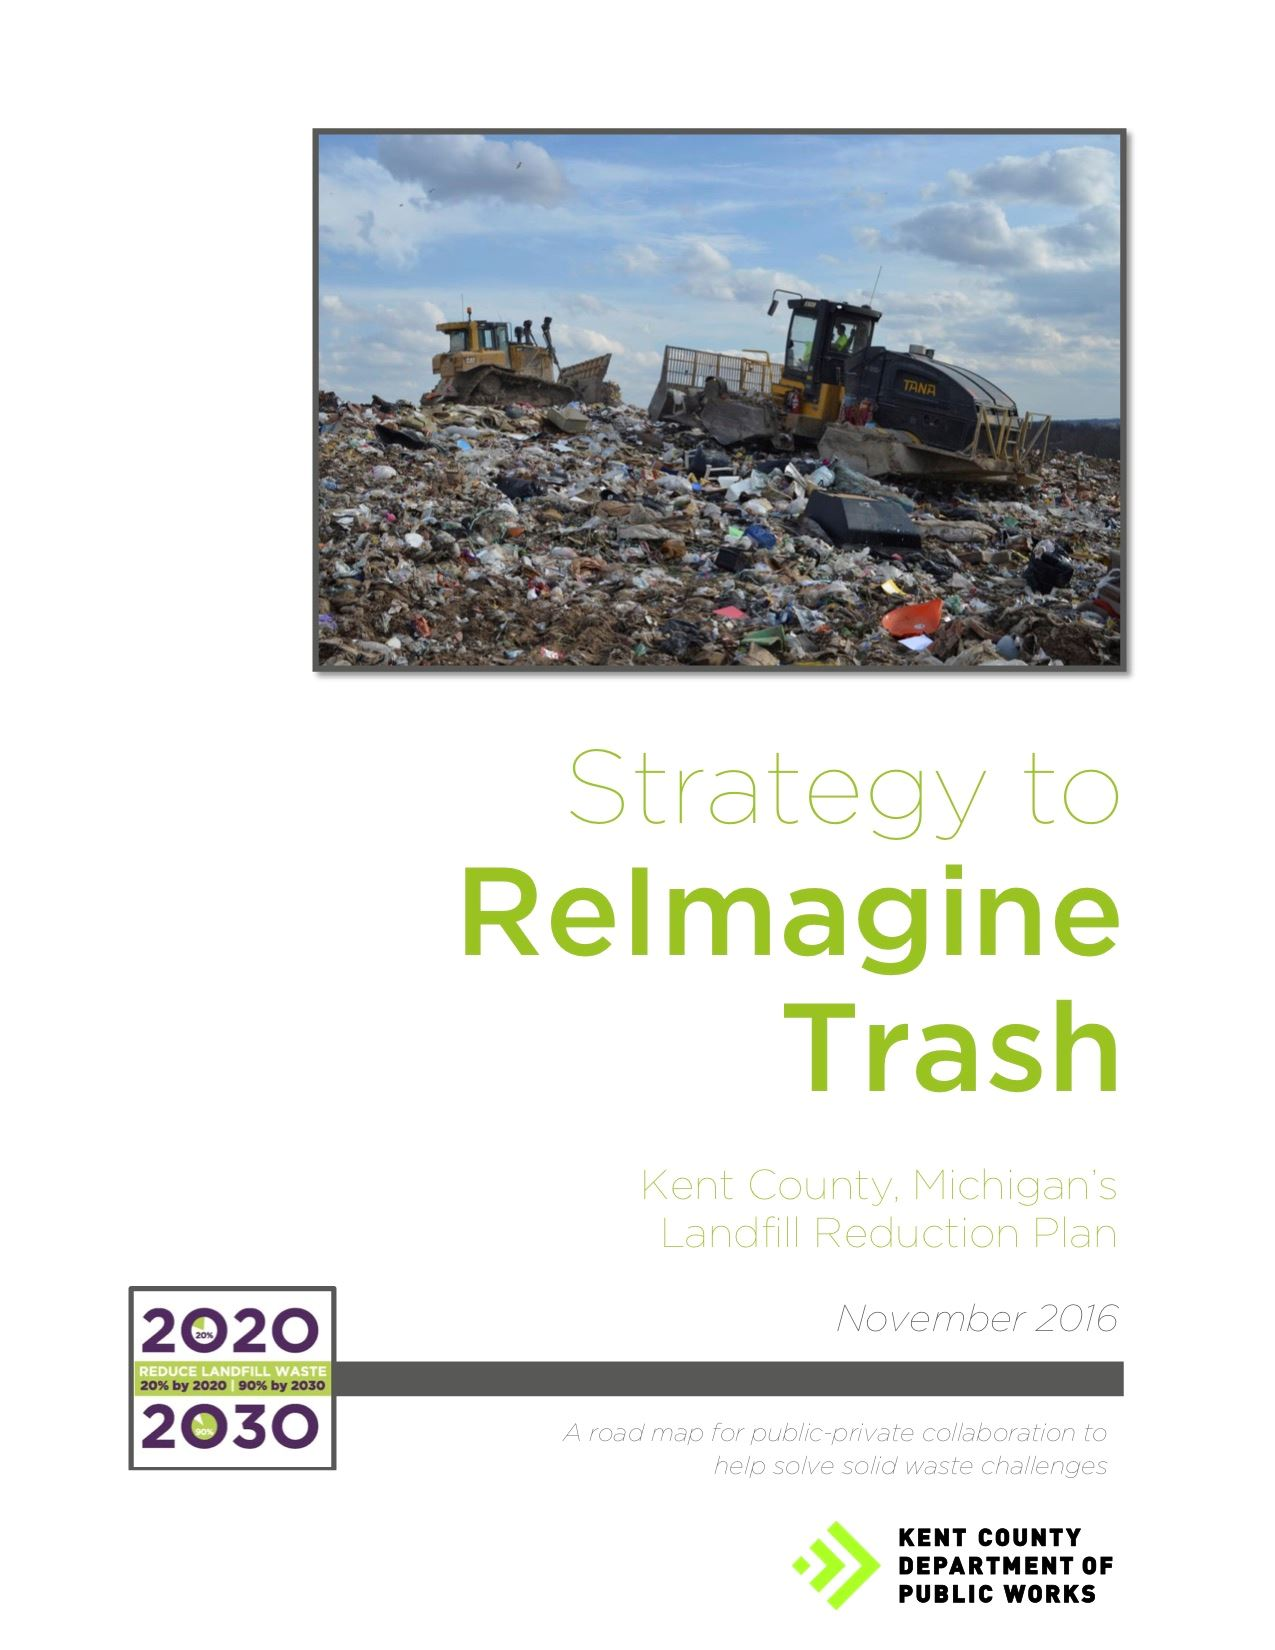 Strategy-to-ReImagine-Trash-Kent-County-Michigans-Landfill-Reduction-Plan-Nov.-2016